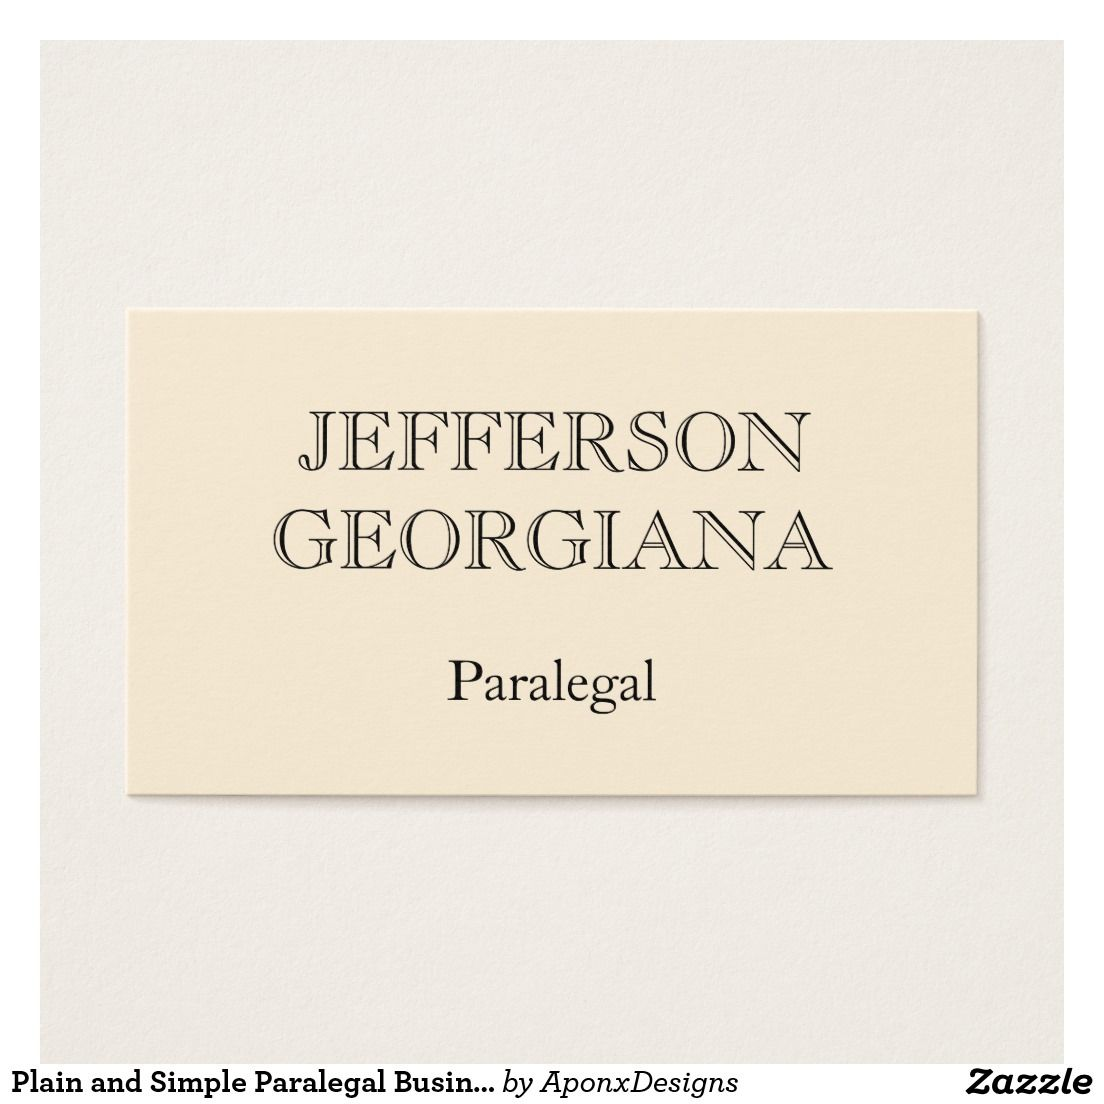 Plain and Simple Paralegal Business Card | Paralegal, Business cards ...